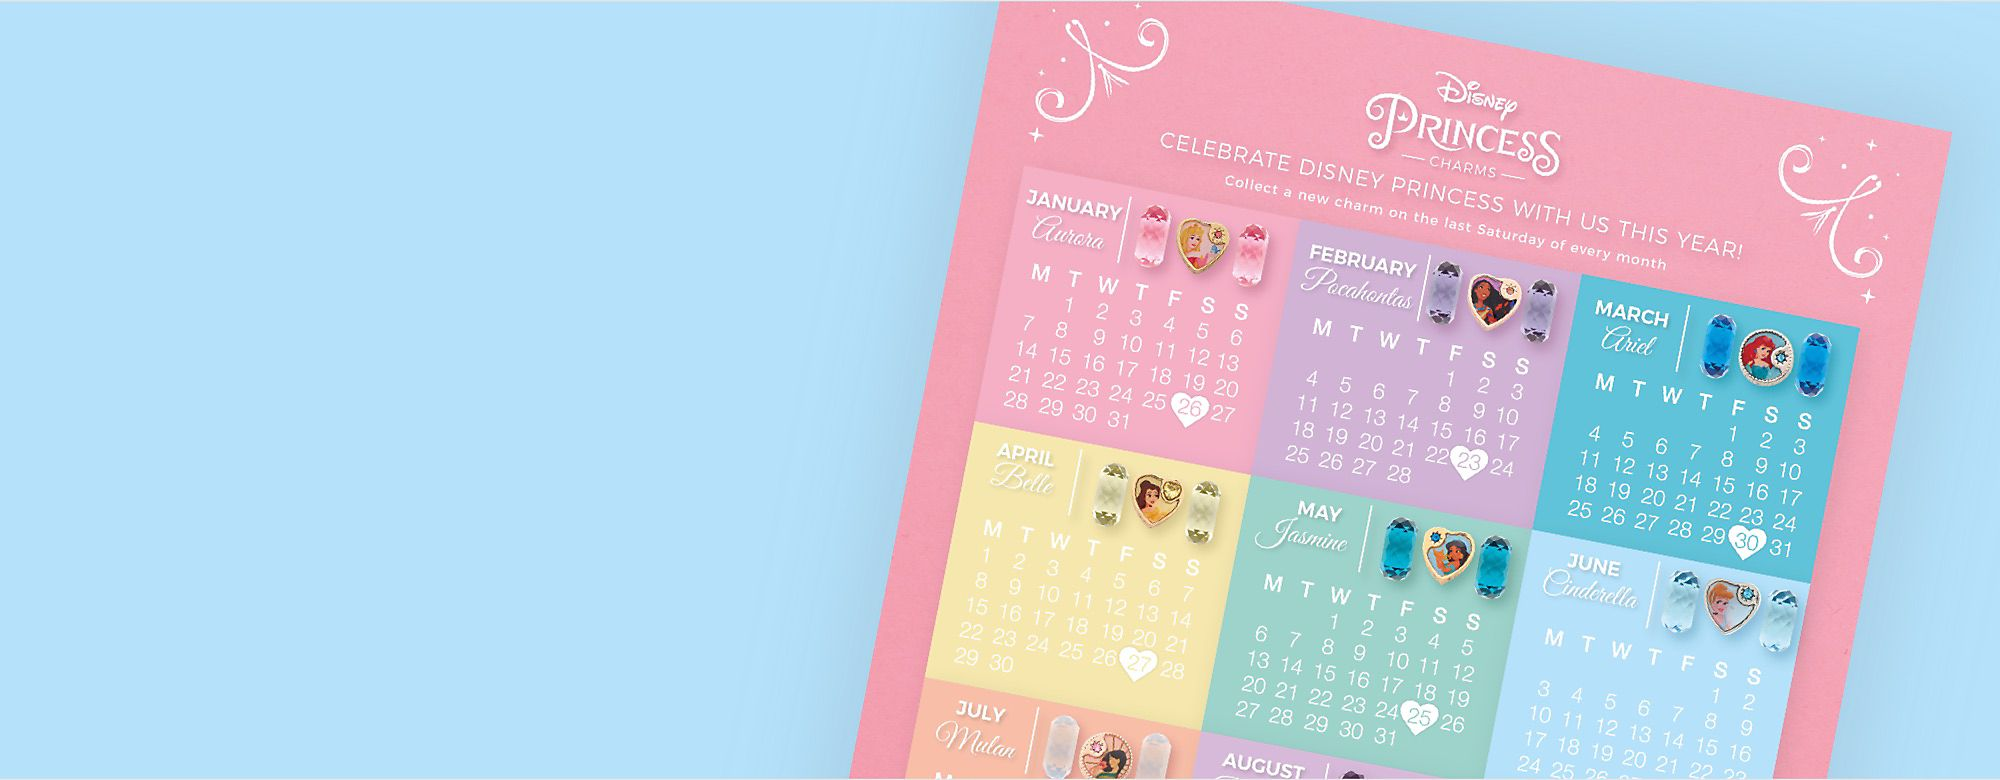 Download your copy of our Princess Calendar to make sure you never miss a Saturday!